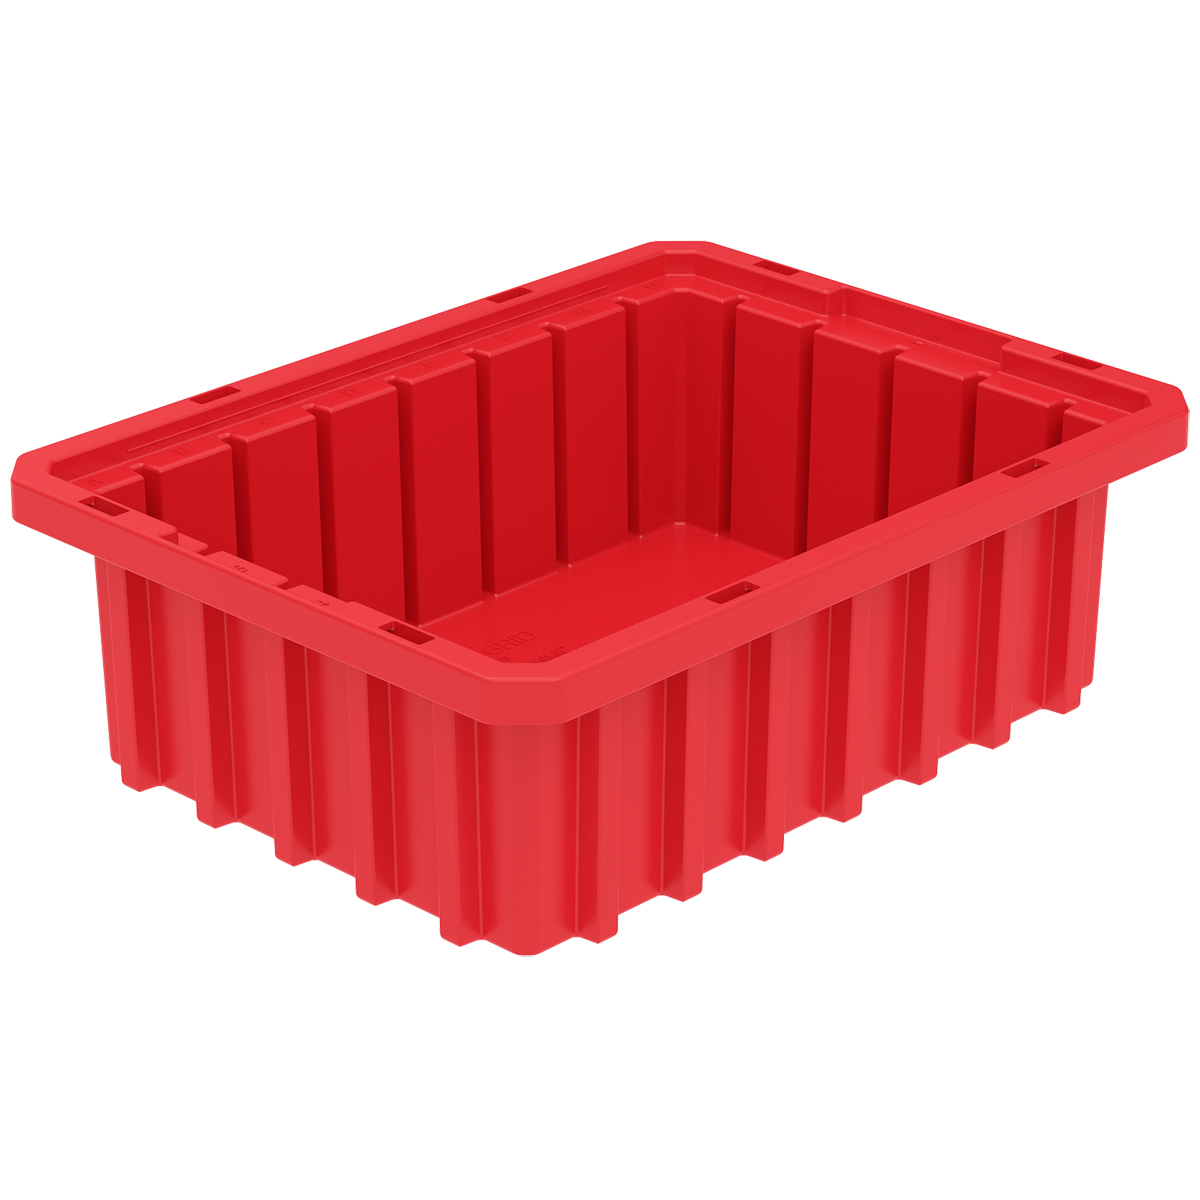 Akro-Grid Dividable Box 10-7/8 x 8-1/4 x 3-1/2, Red.  This item sold in carton quantities of 20.